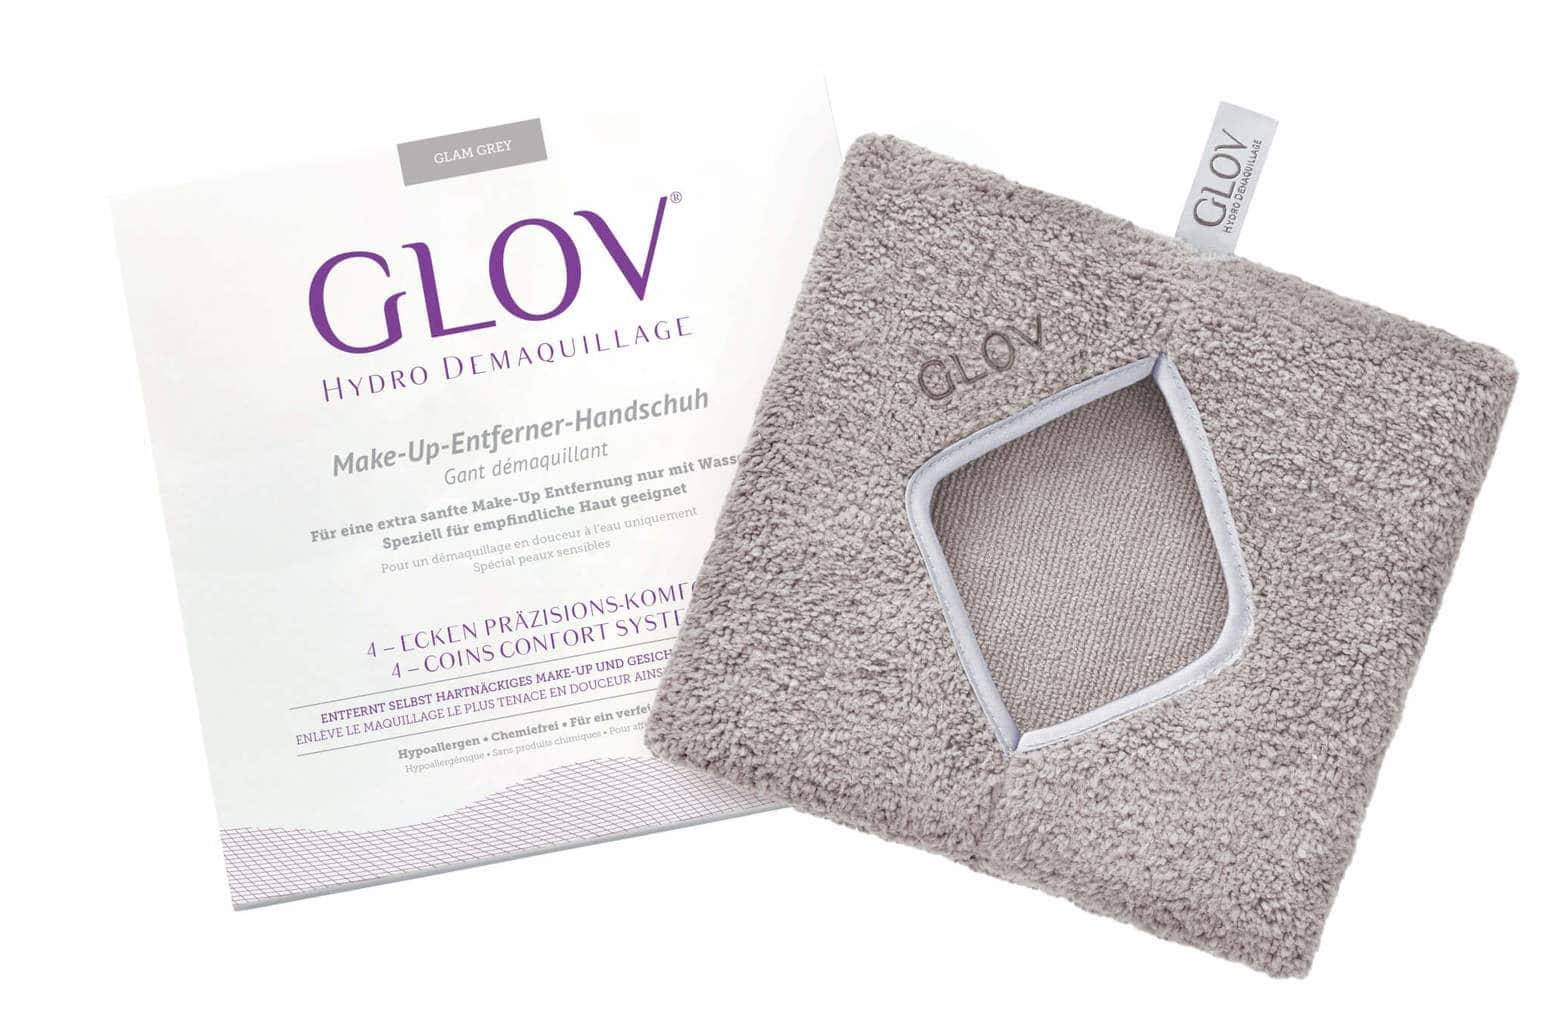 GLOV Comfort Cleansing Glove Glam Gray - The bigger in size GLOV will be perfect to remove make up from neck or chest - The special 4-corners design will help you remove your make up